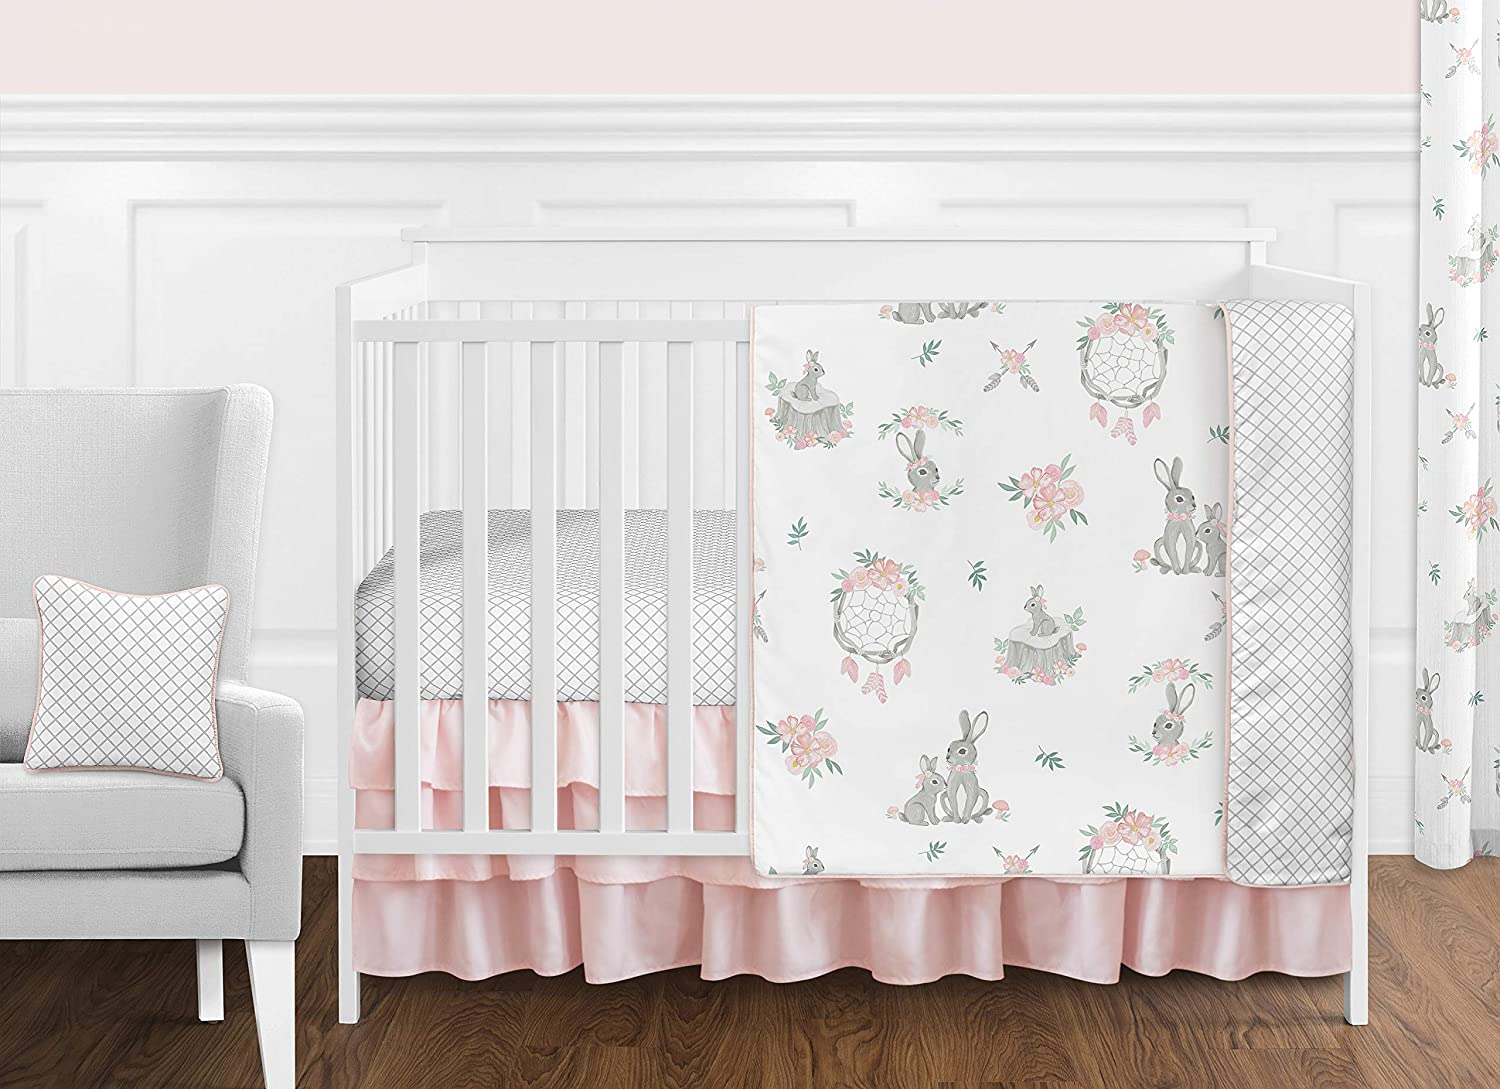 Linen baby girl cover Double-sided pinkmint green blanket with ribbons Linen baby girl blanket Nursery bedding or baby stroller.